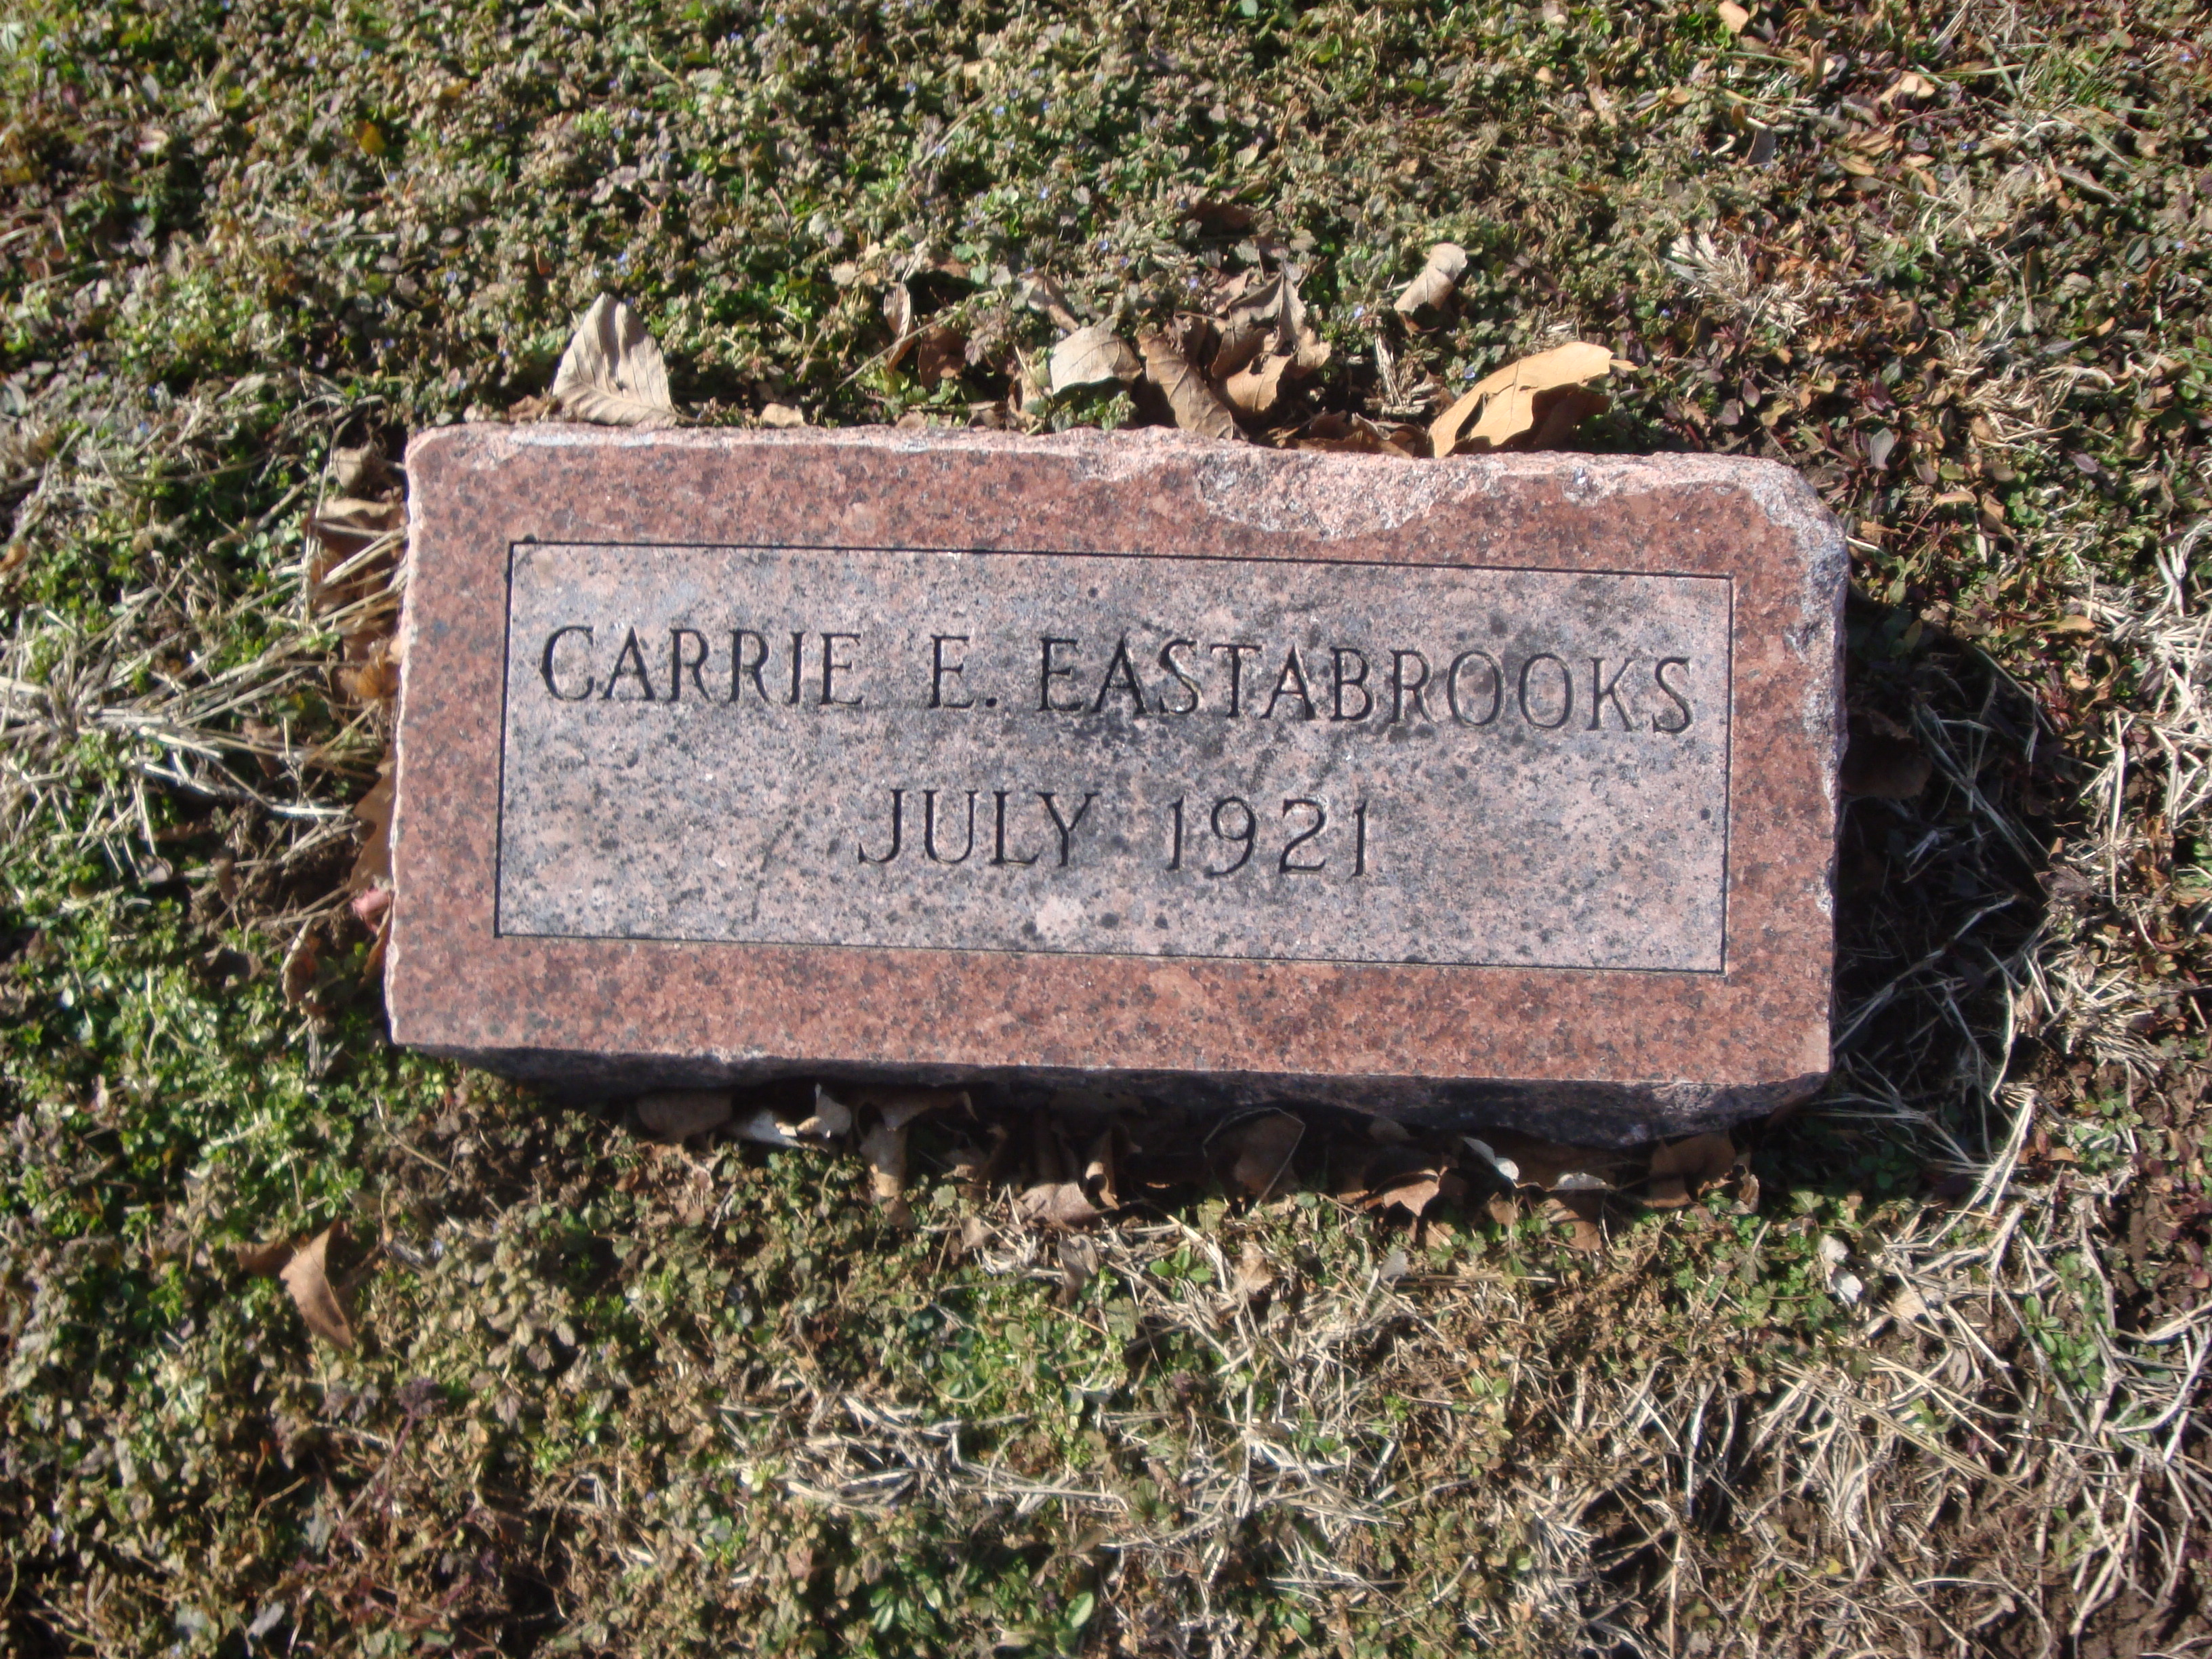 Carrie Elizabeth Eastabrooks